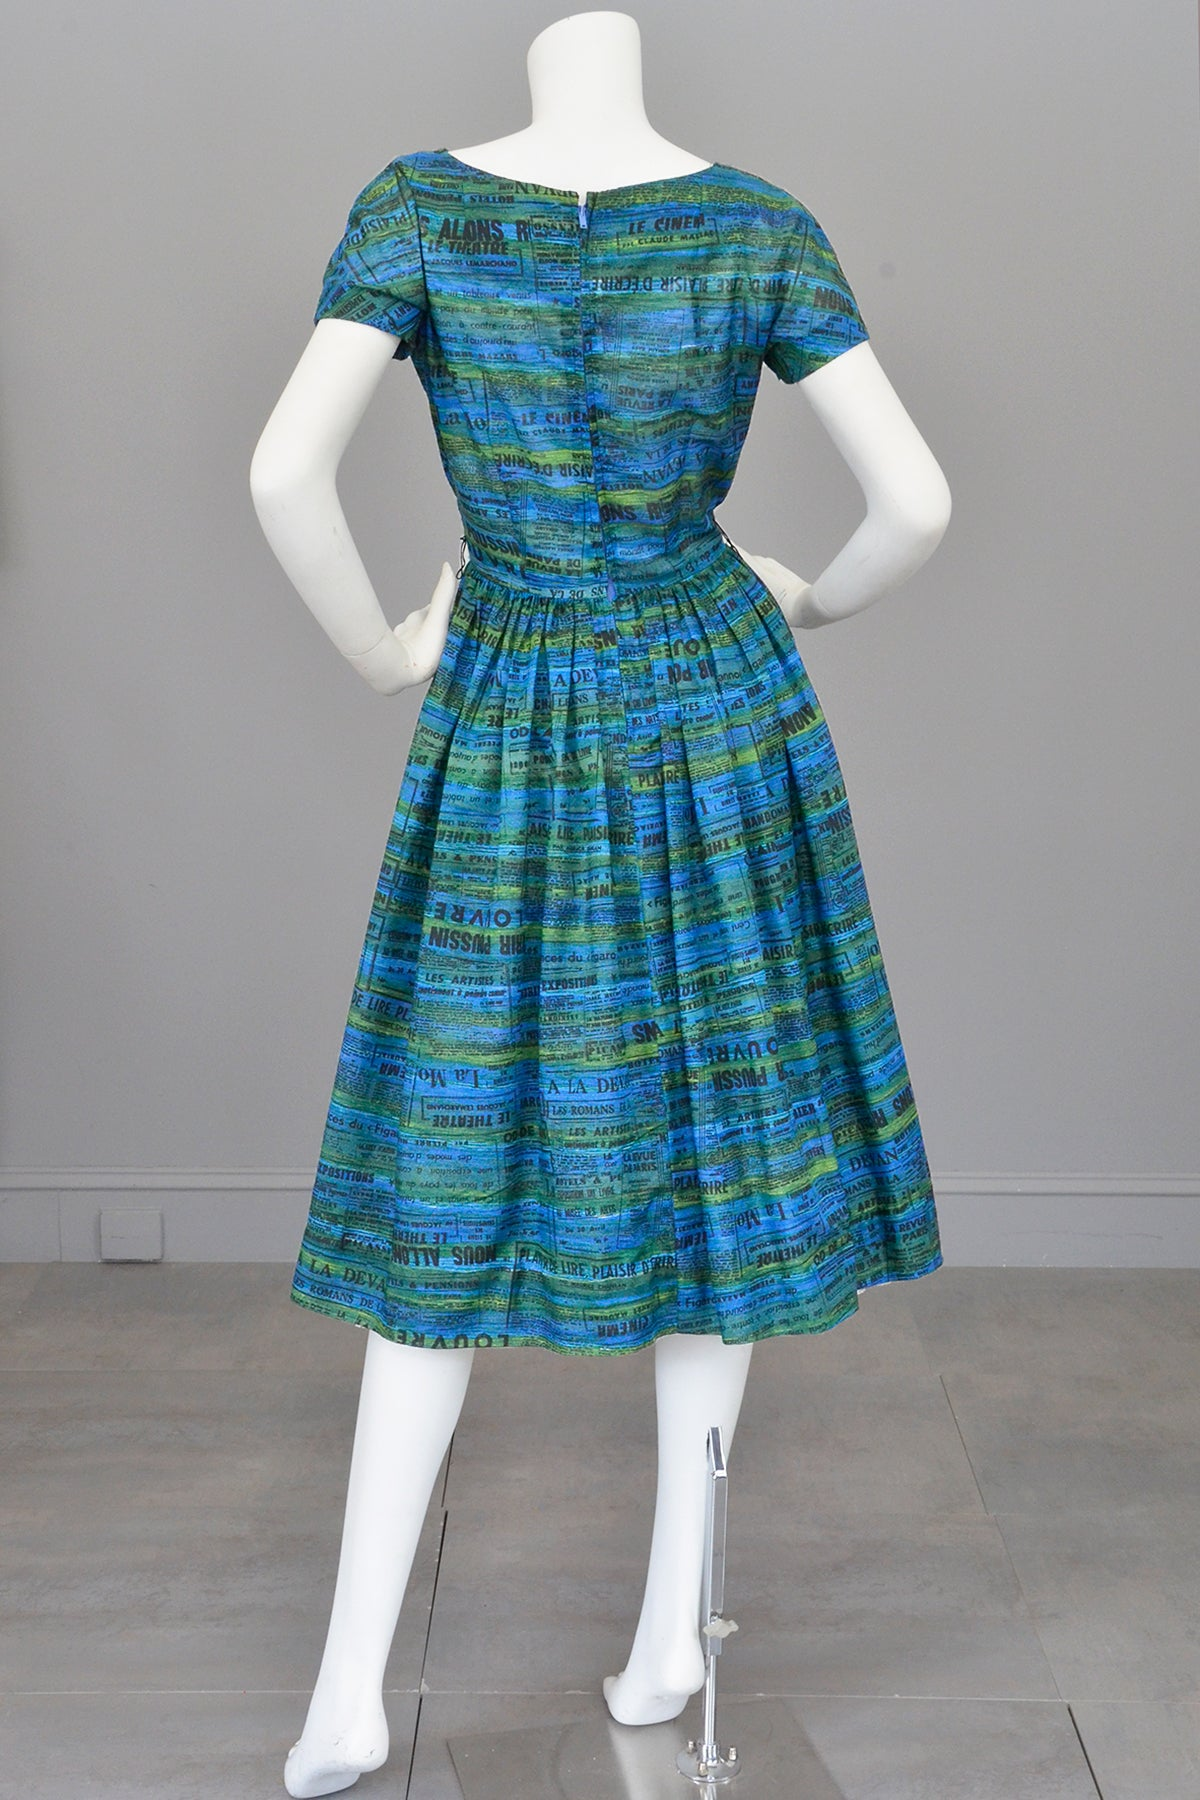 1950s Novelty Print Dress of French Newspaper Advertisements, Pockets, Full Skirt